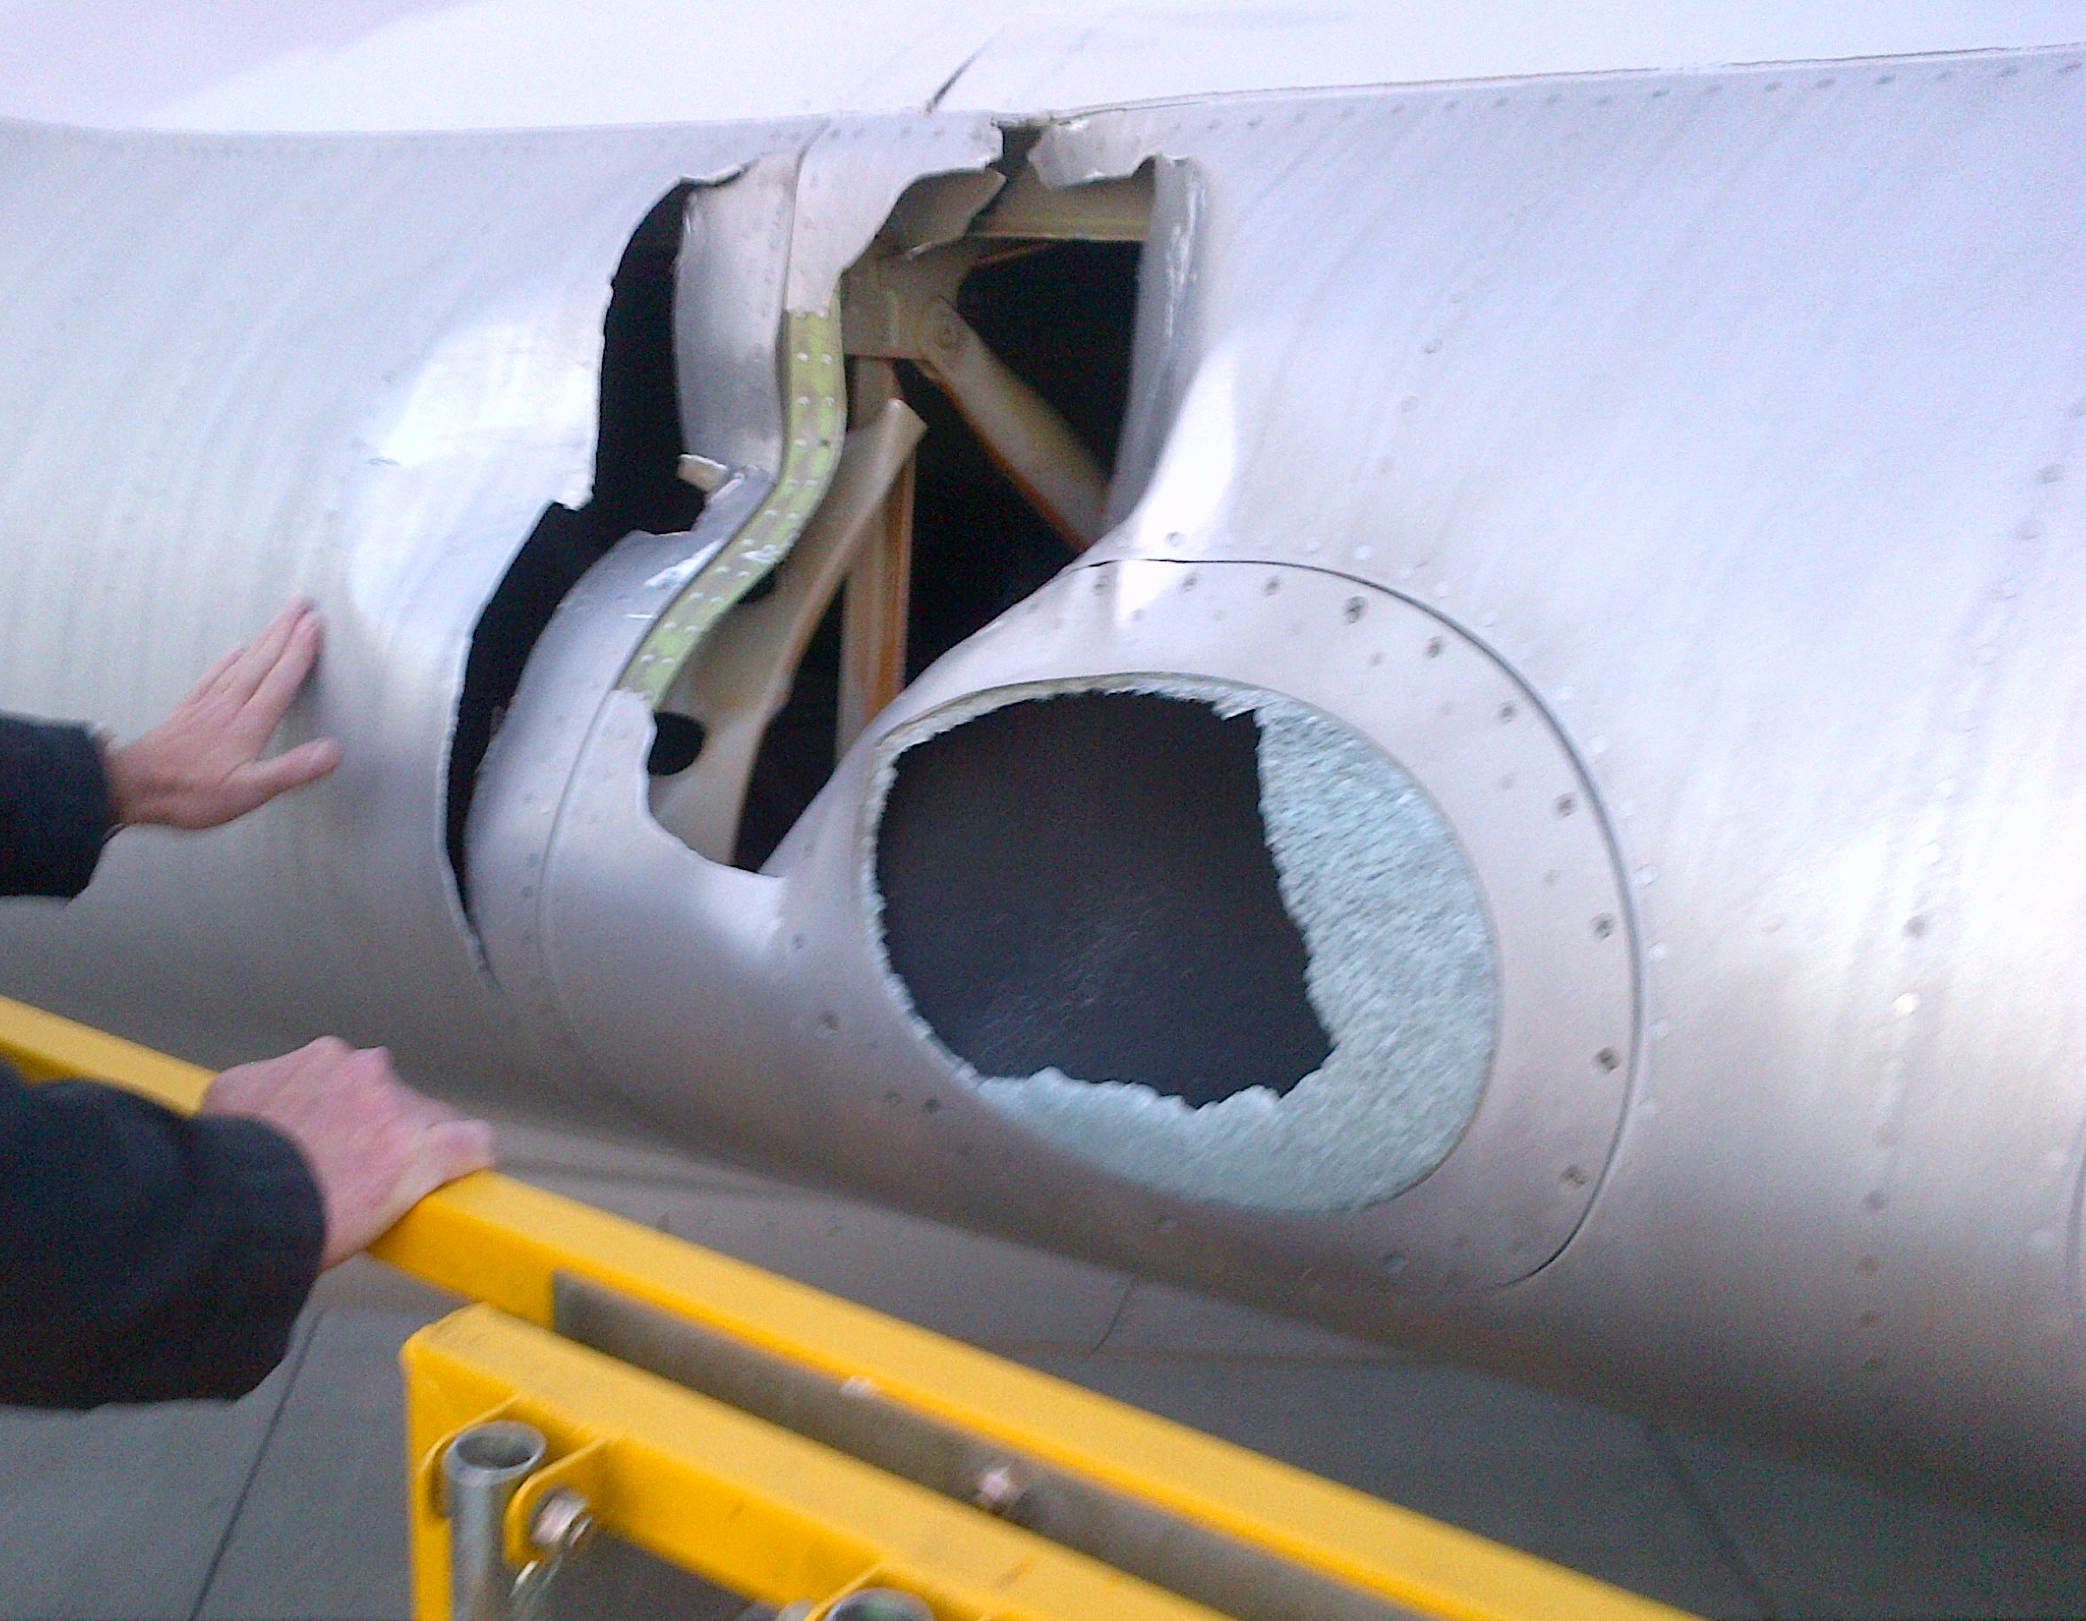 Figure 4: Close up of the damage to the left wing inboard leading edge and landing light cover